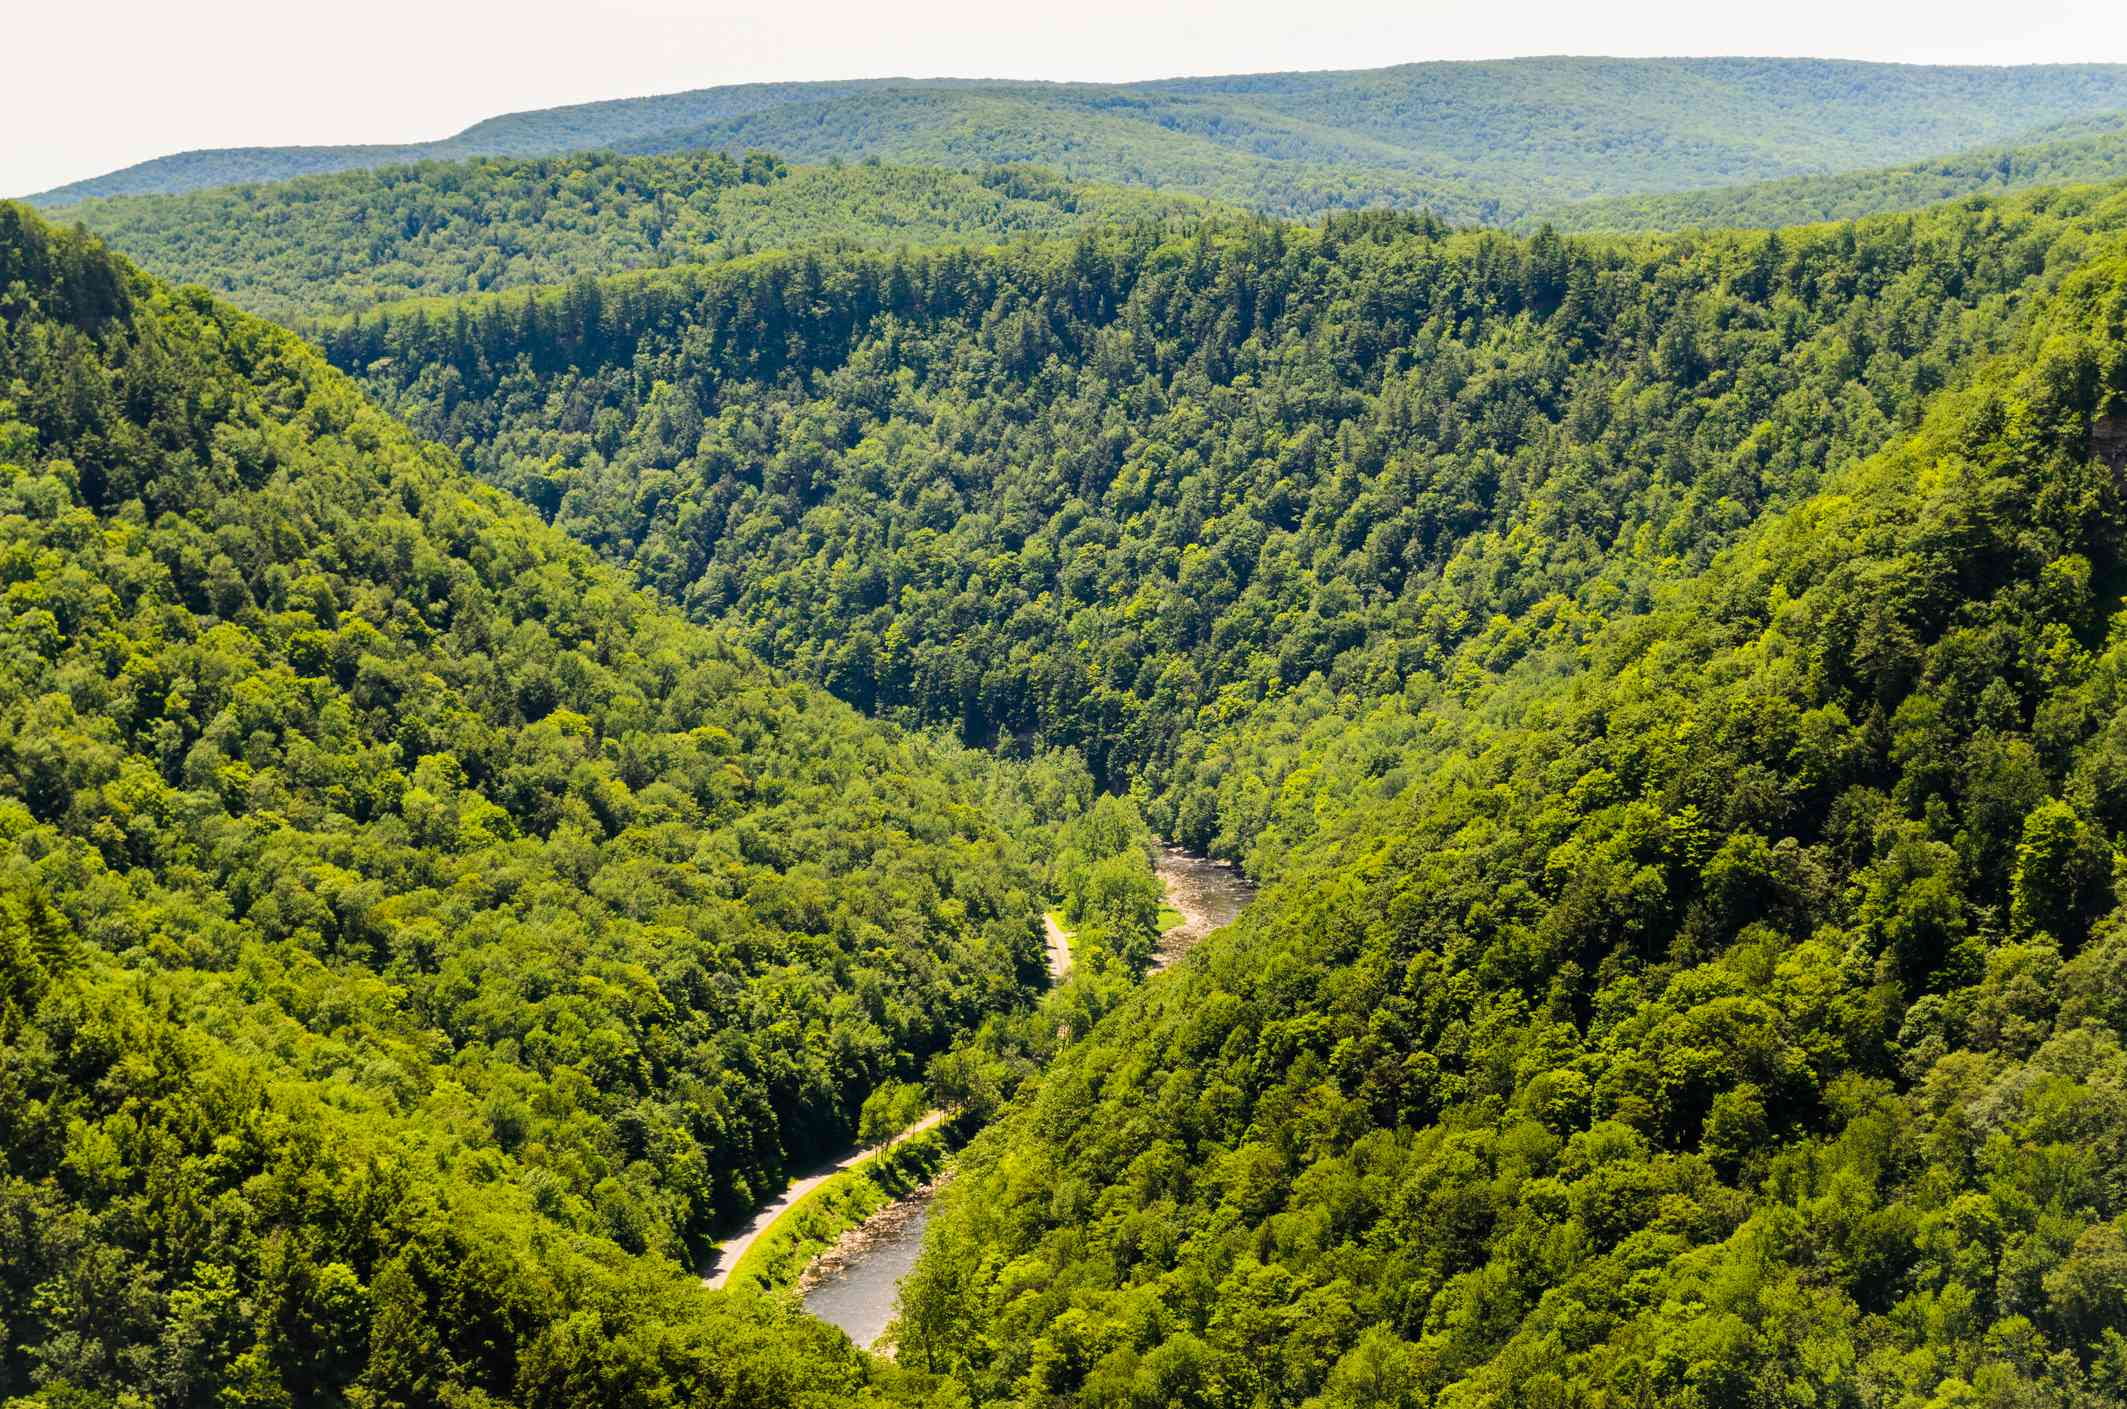 the tree-covered Pine Creek Gorge